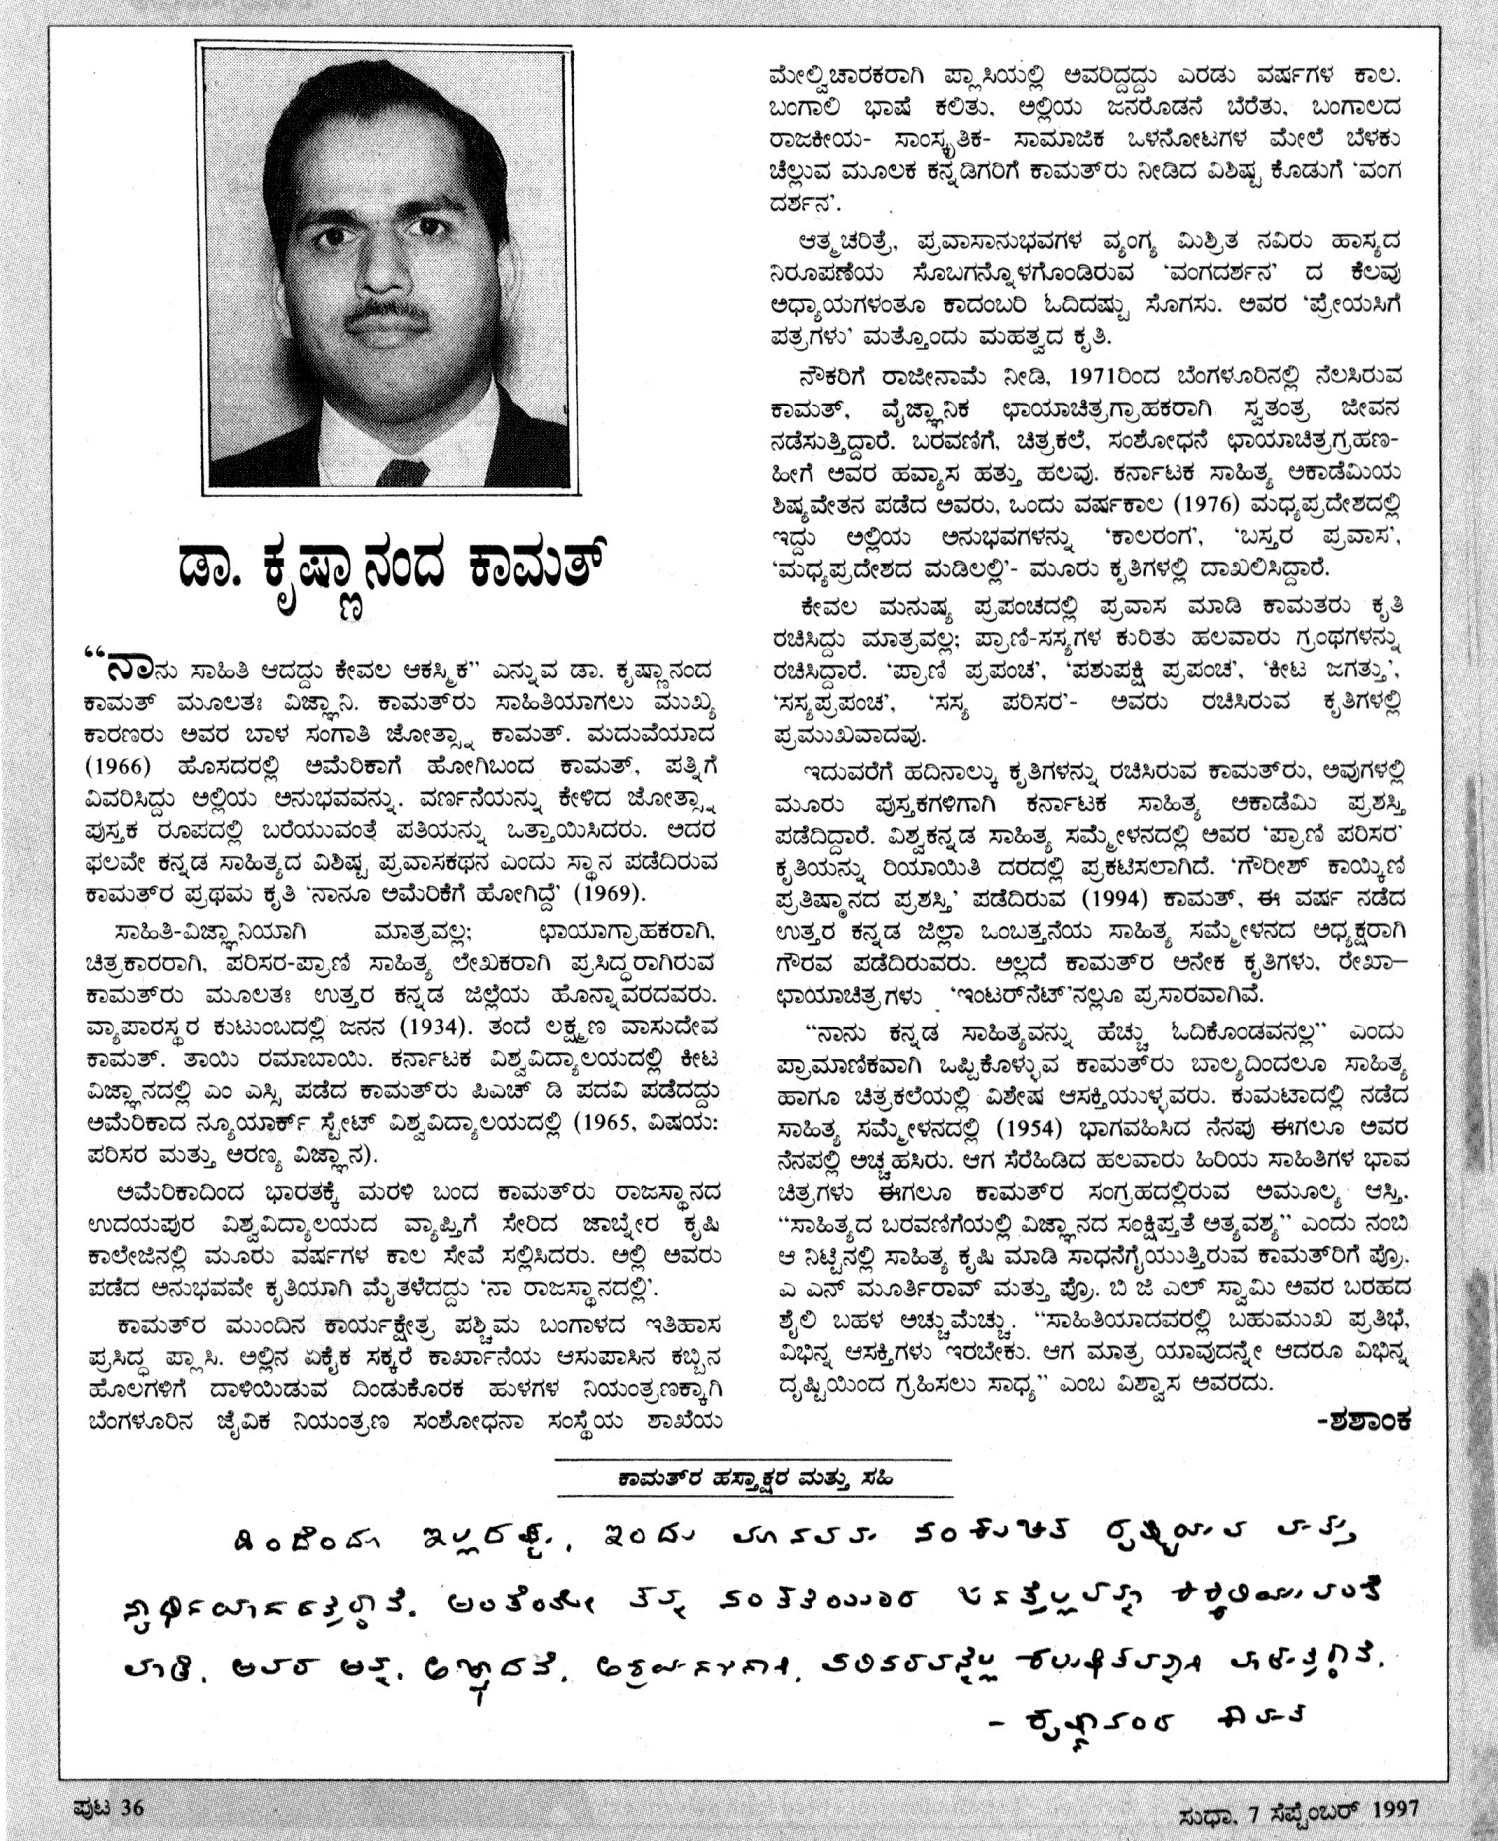 mass media essay in kannada Standard march 22, 2018 by / add comment mass media essay in kannada language history, resume writing service perth wa, written curriculum vitae format what really made me hate the.